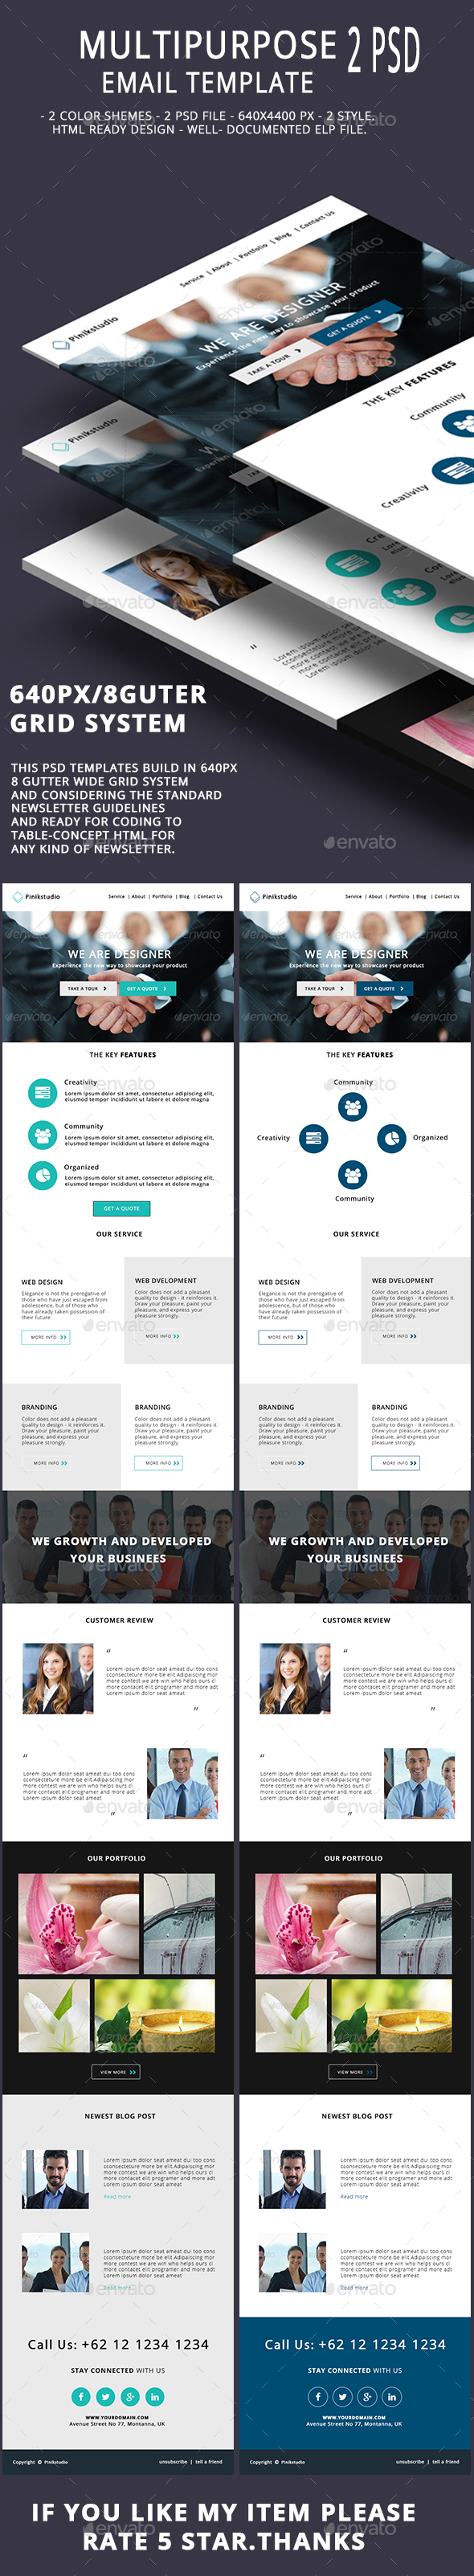 Multipurpose Email Template V9 - E-newsletters Web Elements